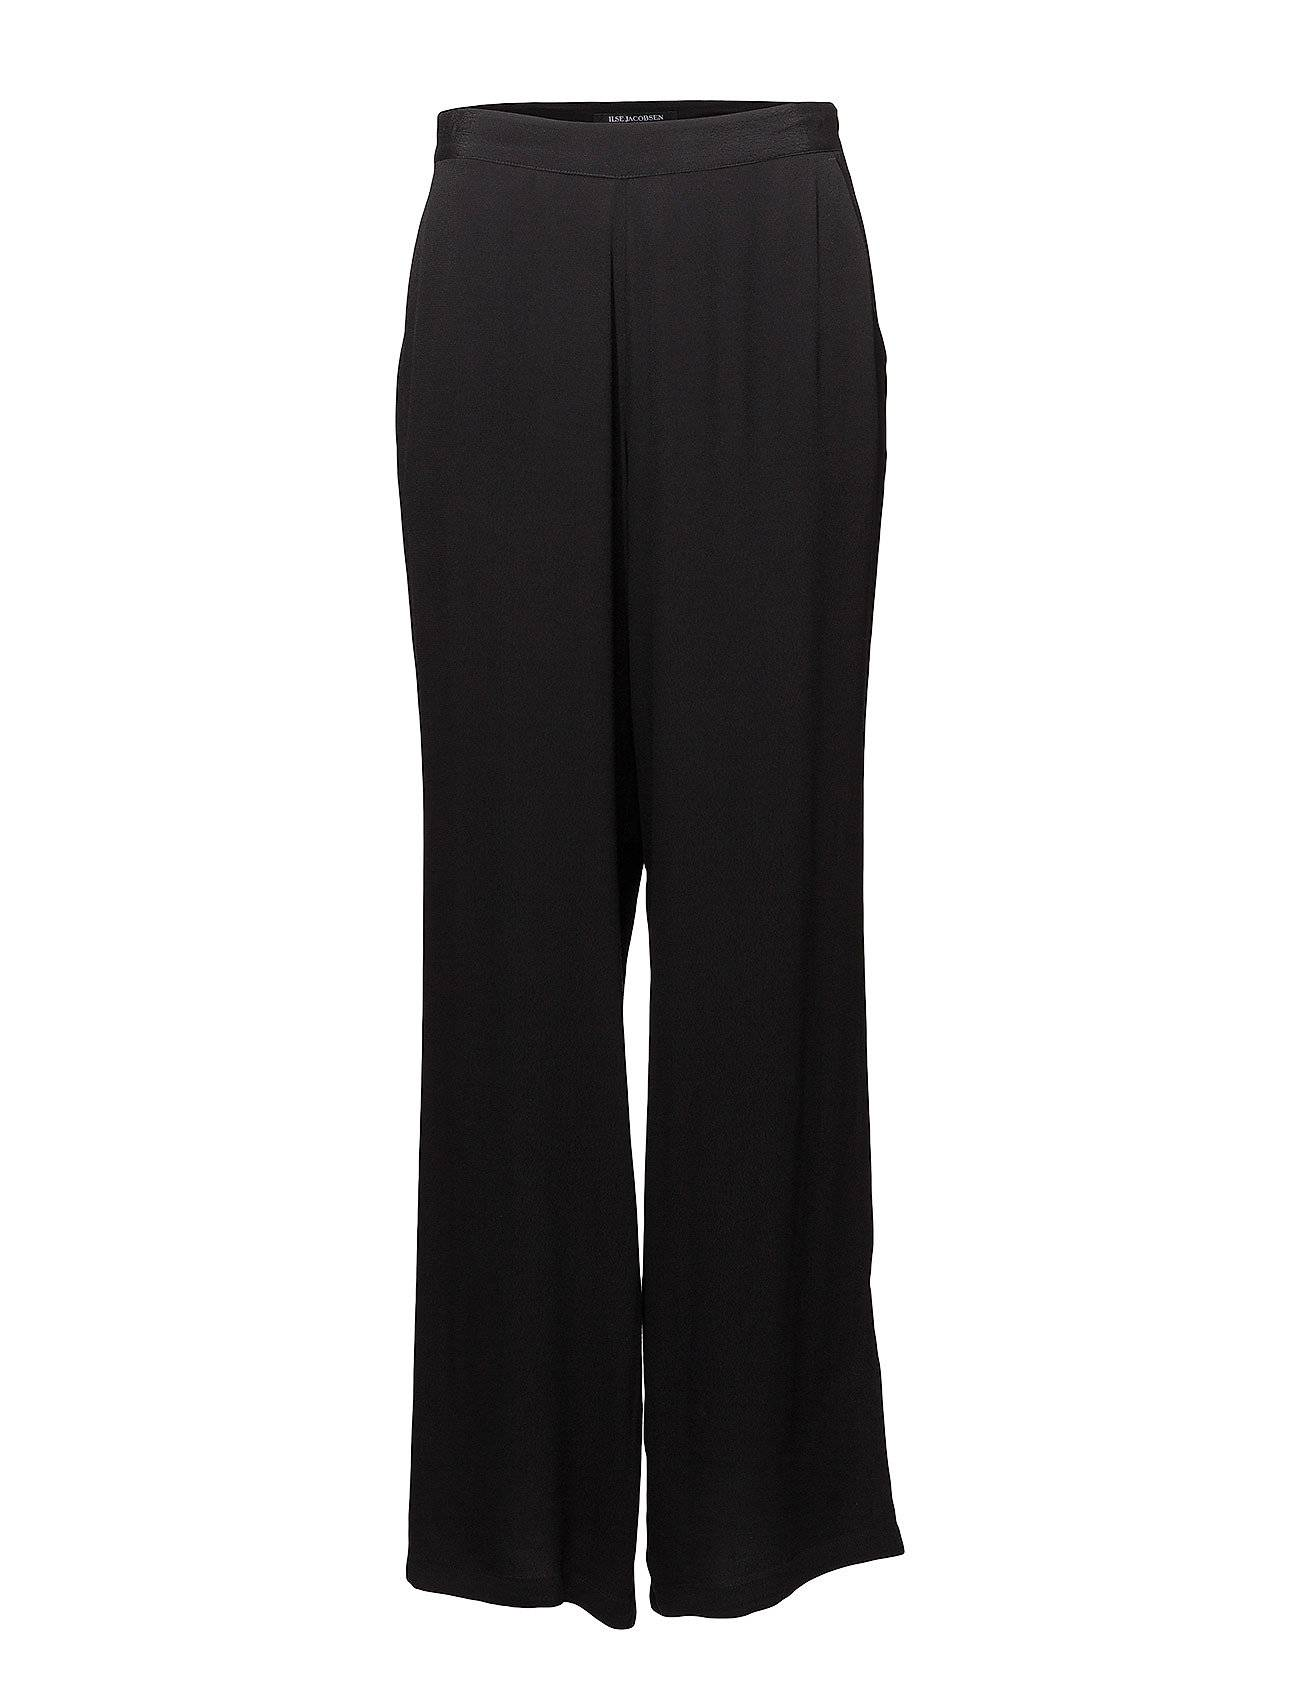 Ilse Jacobsen Pants